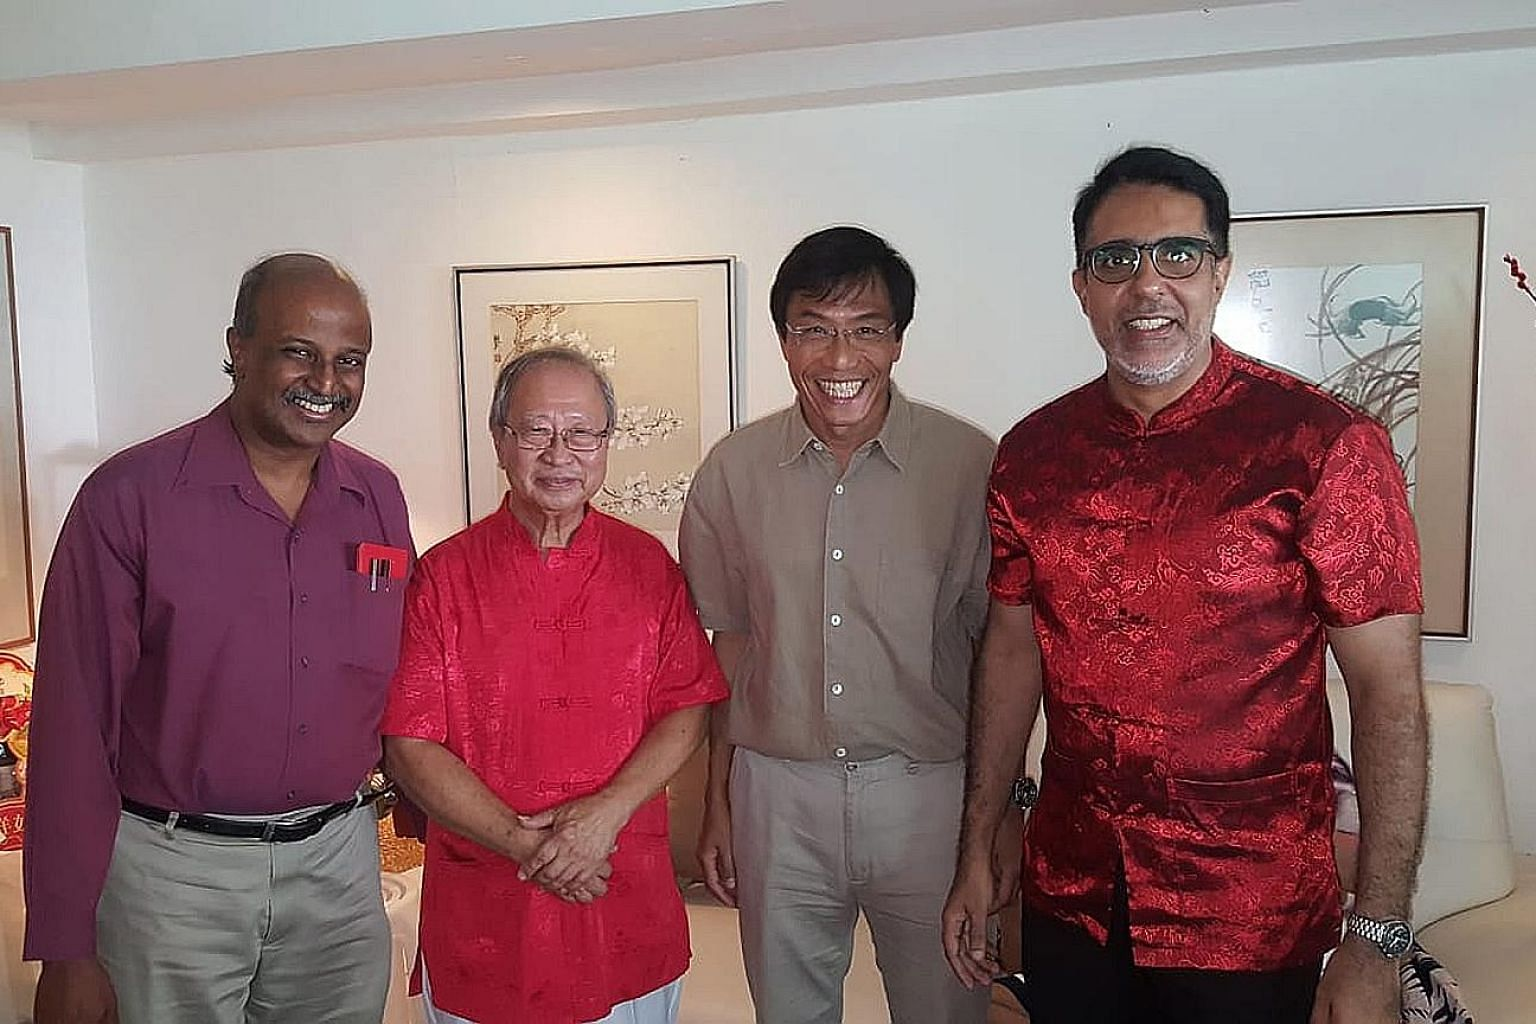 Singapore Democratic Party (SDP) chairman Paul Tambyah (left) posted a photo on Facebook of the gathering of opposition leaders (from second left) Dr Tan Cheng Bock, SDP chief Chee Soon Juan and Workers' Party chief Pritam Singh. Also present were Pe